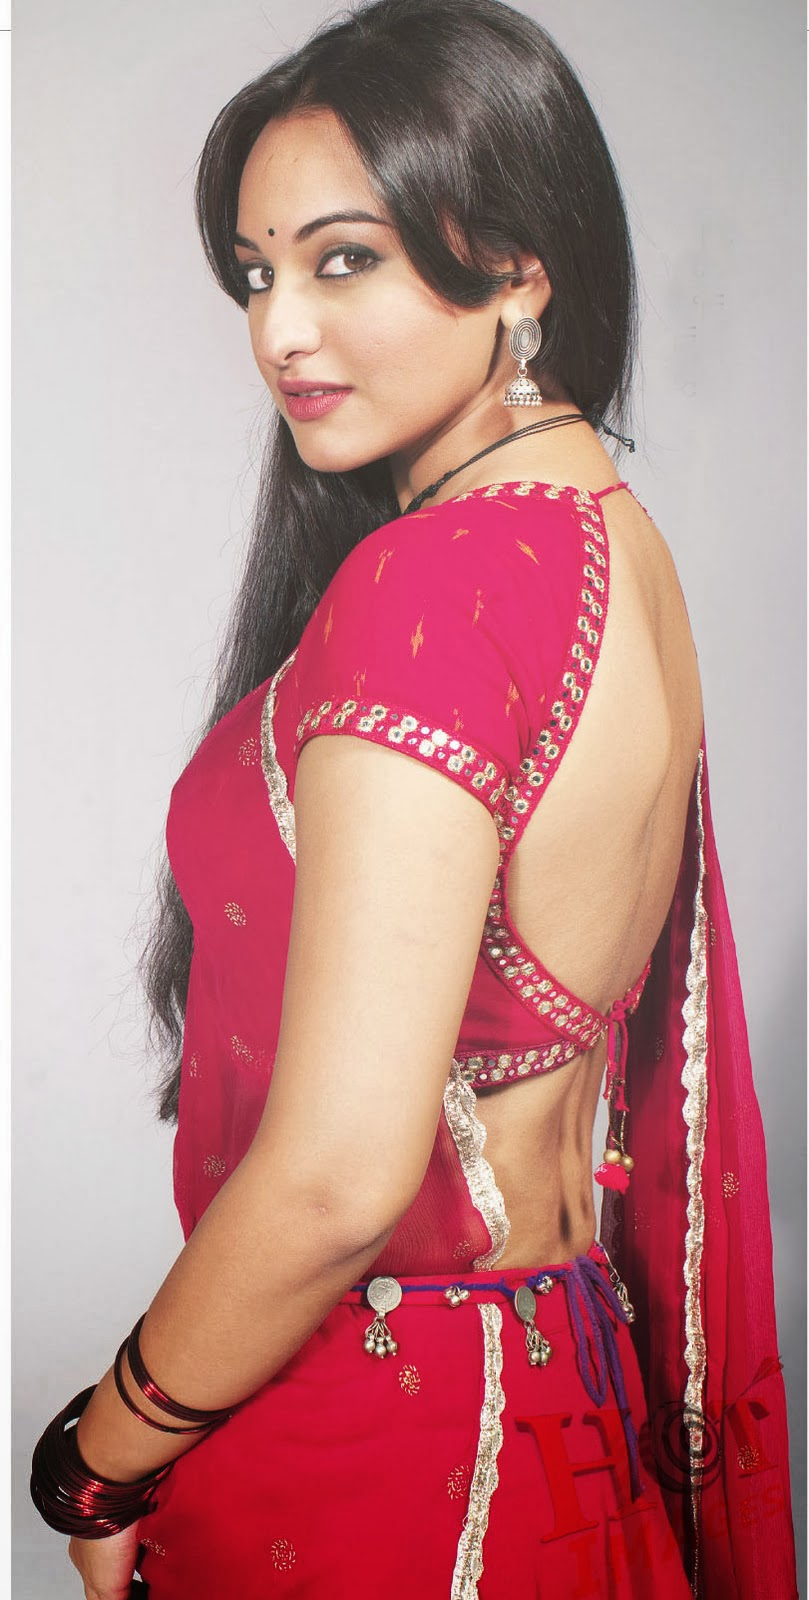 sonakshi sinha hot back pictures in saree